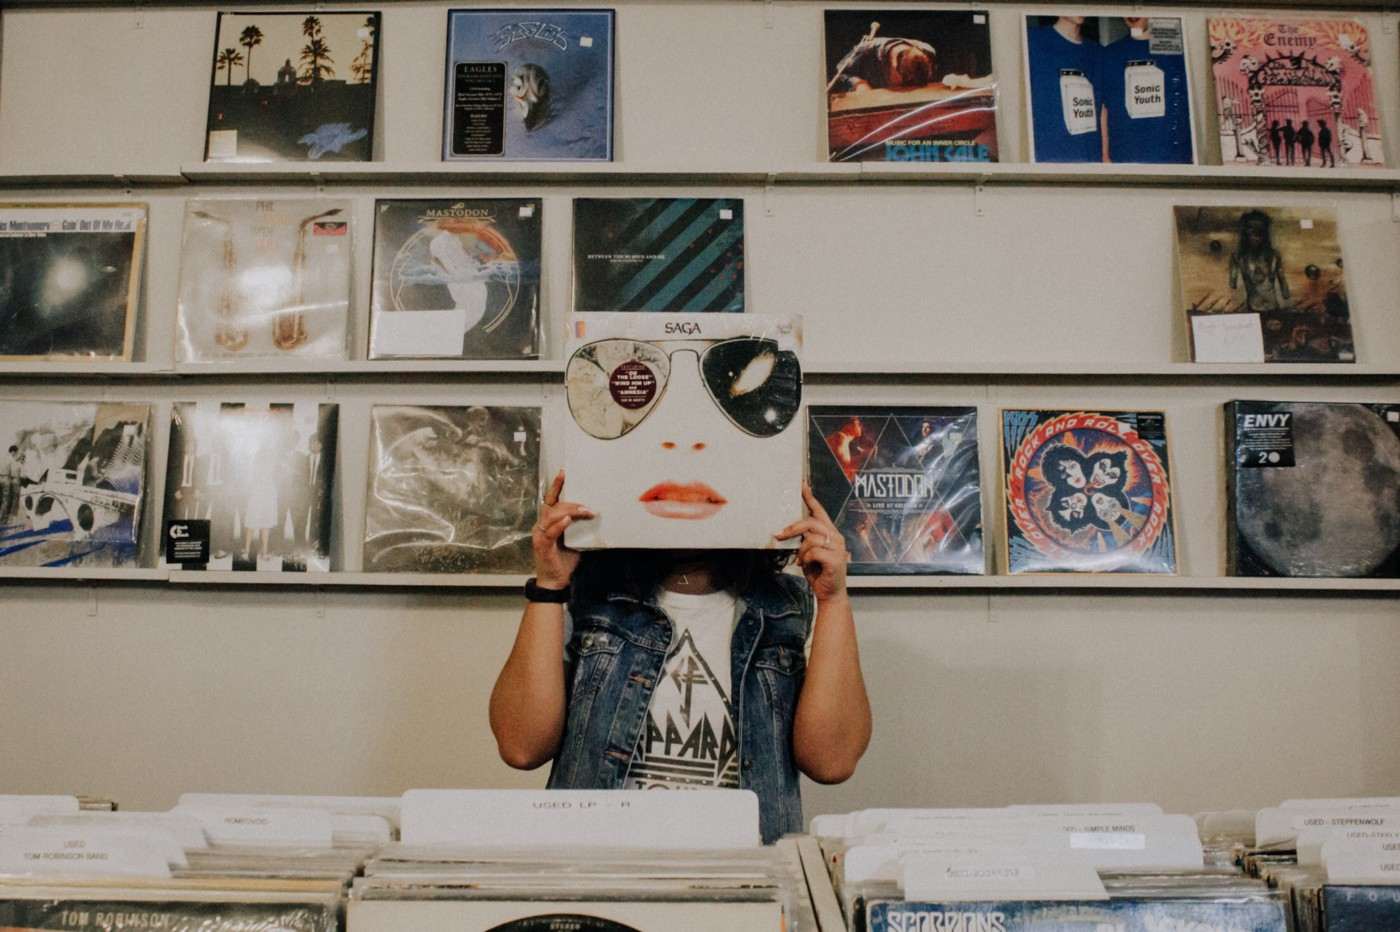 A girl standing in a record shop, in front of a wall of records, wearing a jean jacket and a Def Leppard t-shirt, holding up a white record with a face on it, covering the person's actual face. Writing under a pseudonym. The real reason I write under a pseudonym. Rose Kelly. Rose Edith Kelly. Sir Gerald Kelly. Aleister Crowley.